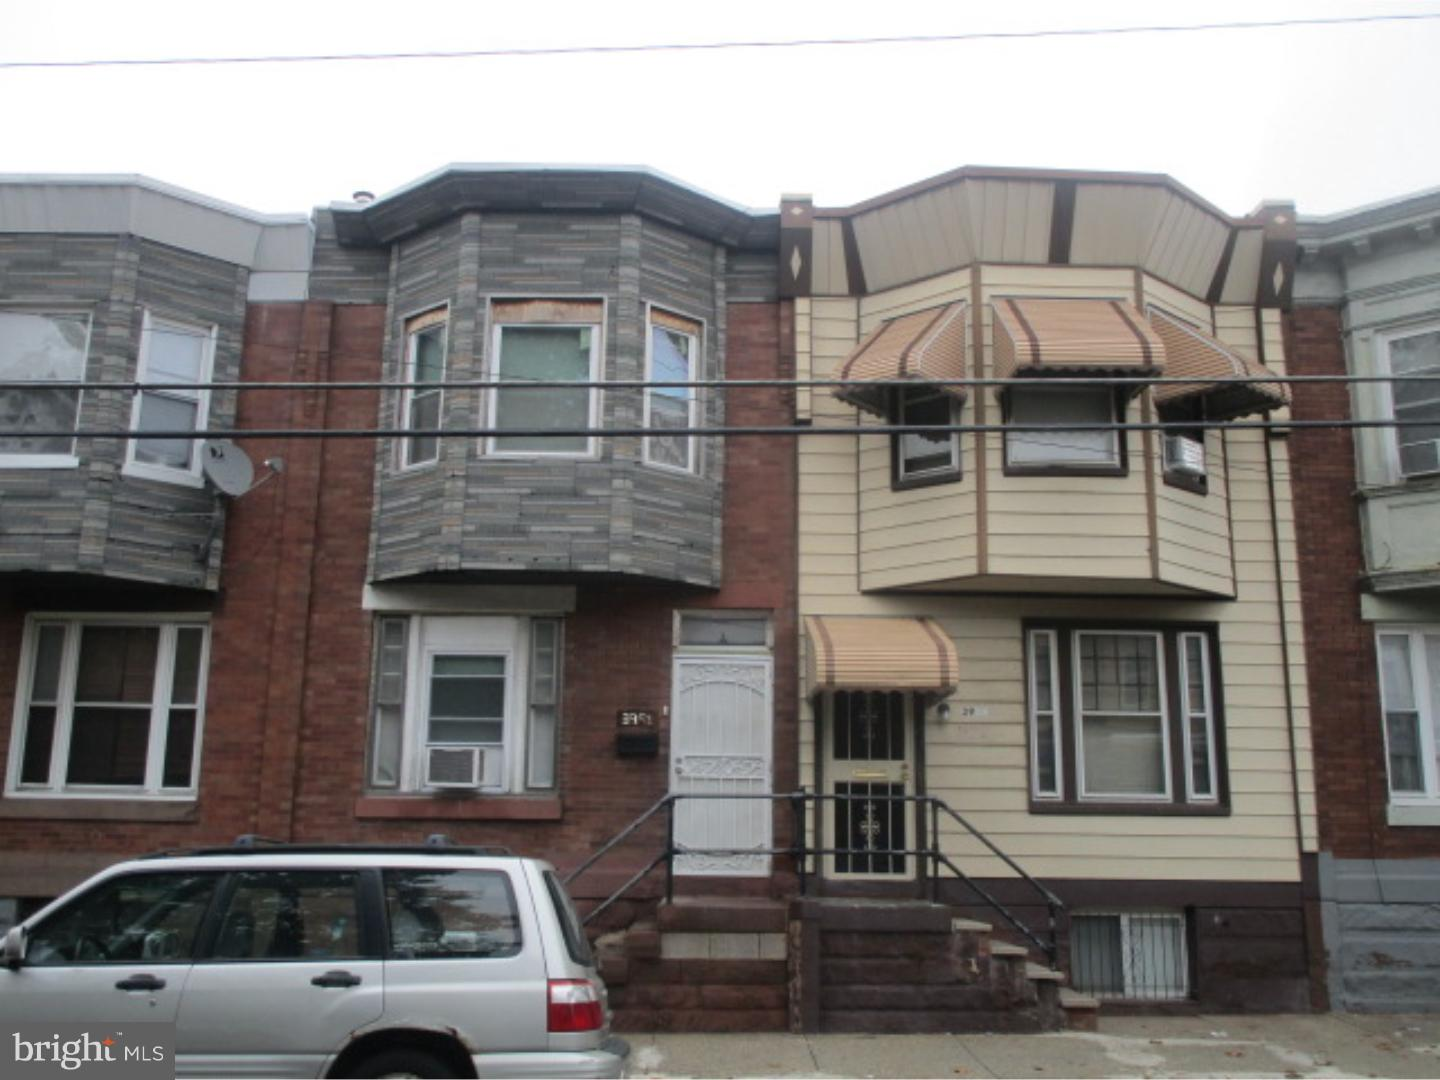 3951 N 9TH Street Philadelphia, PA 19140